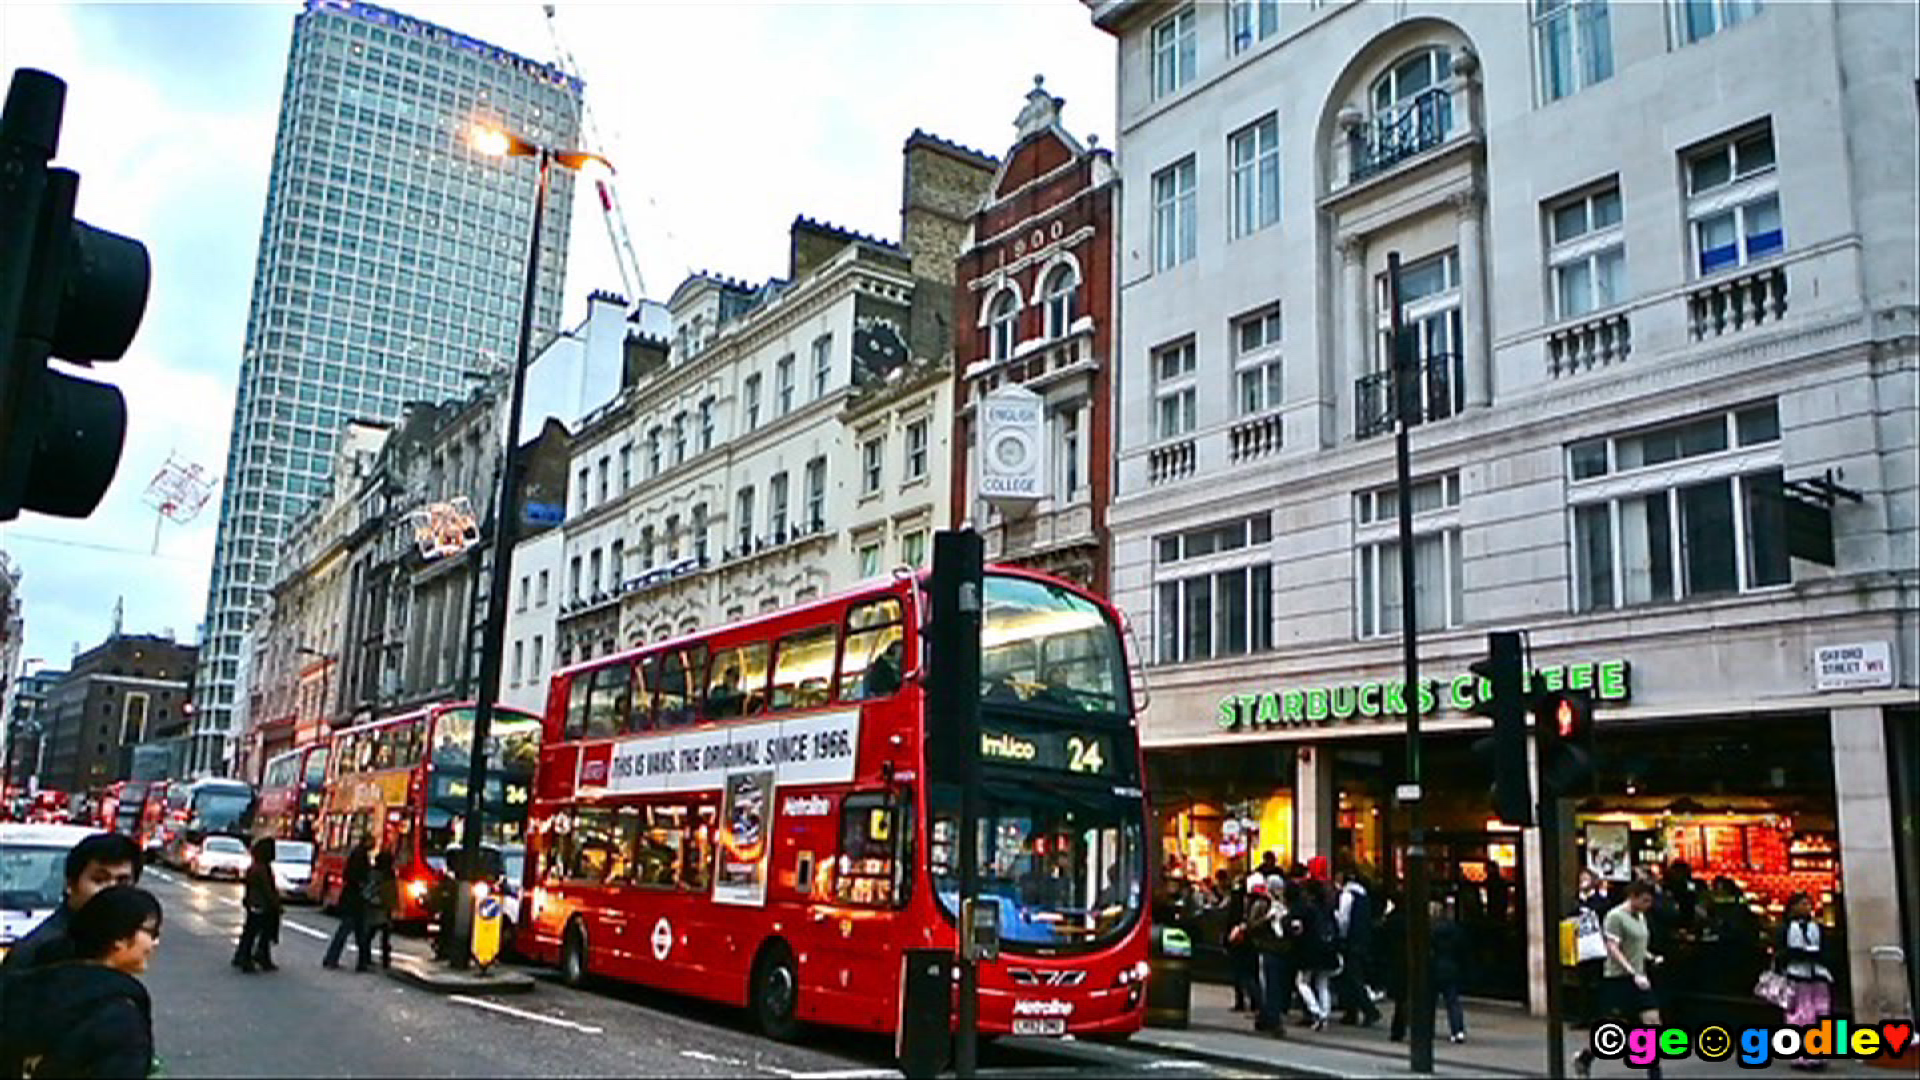 oxford street hd - photo #7